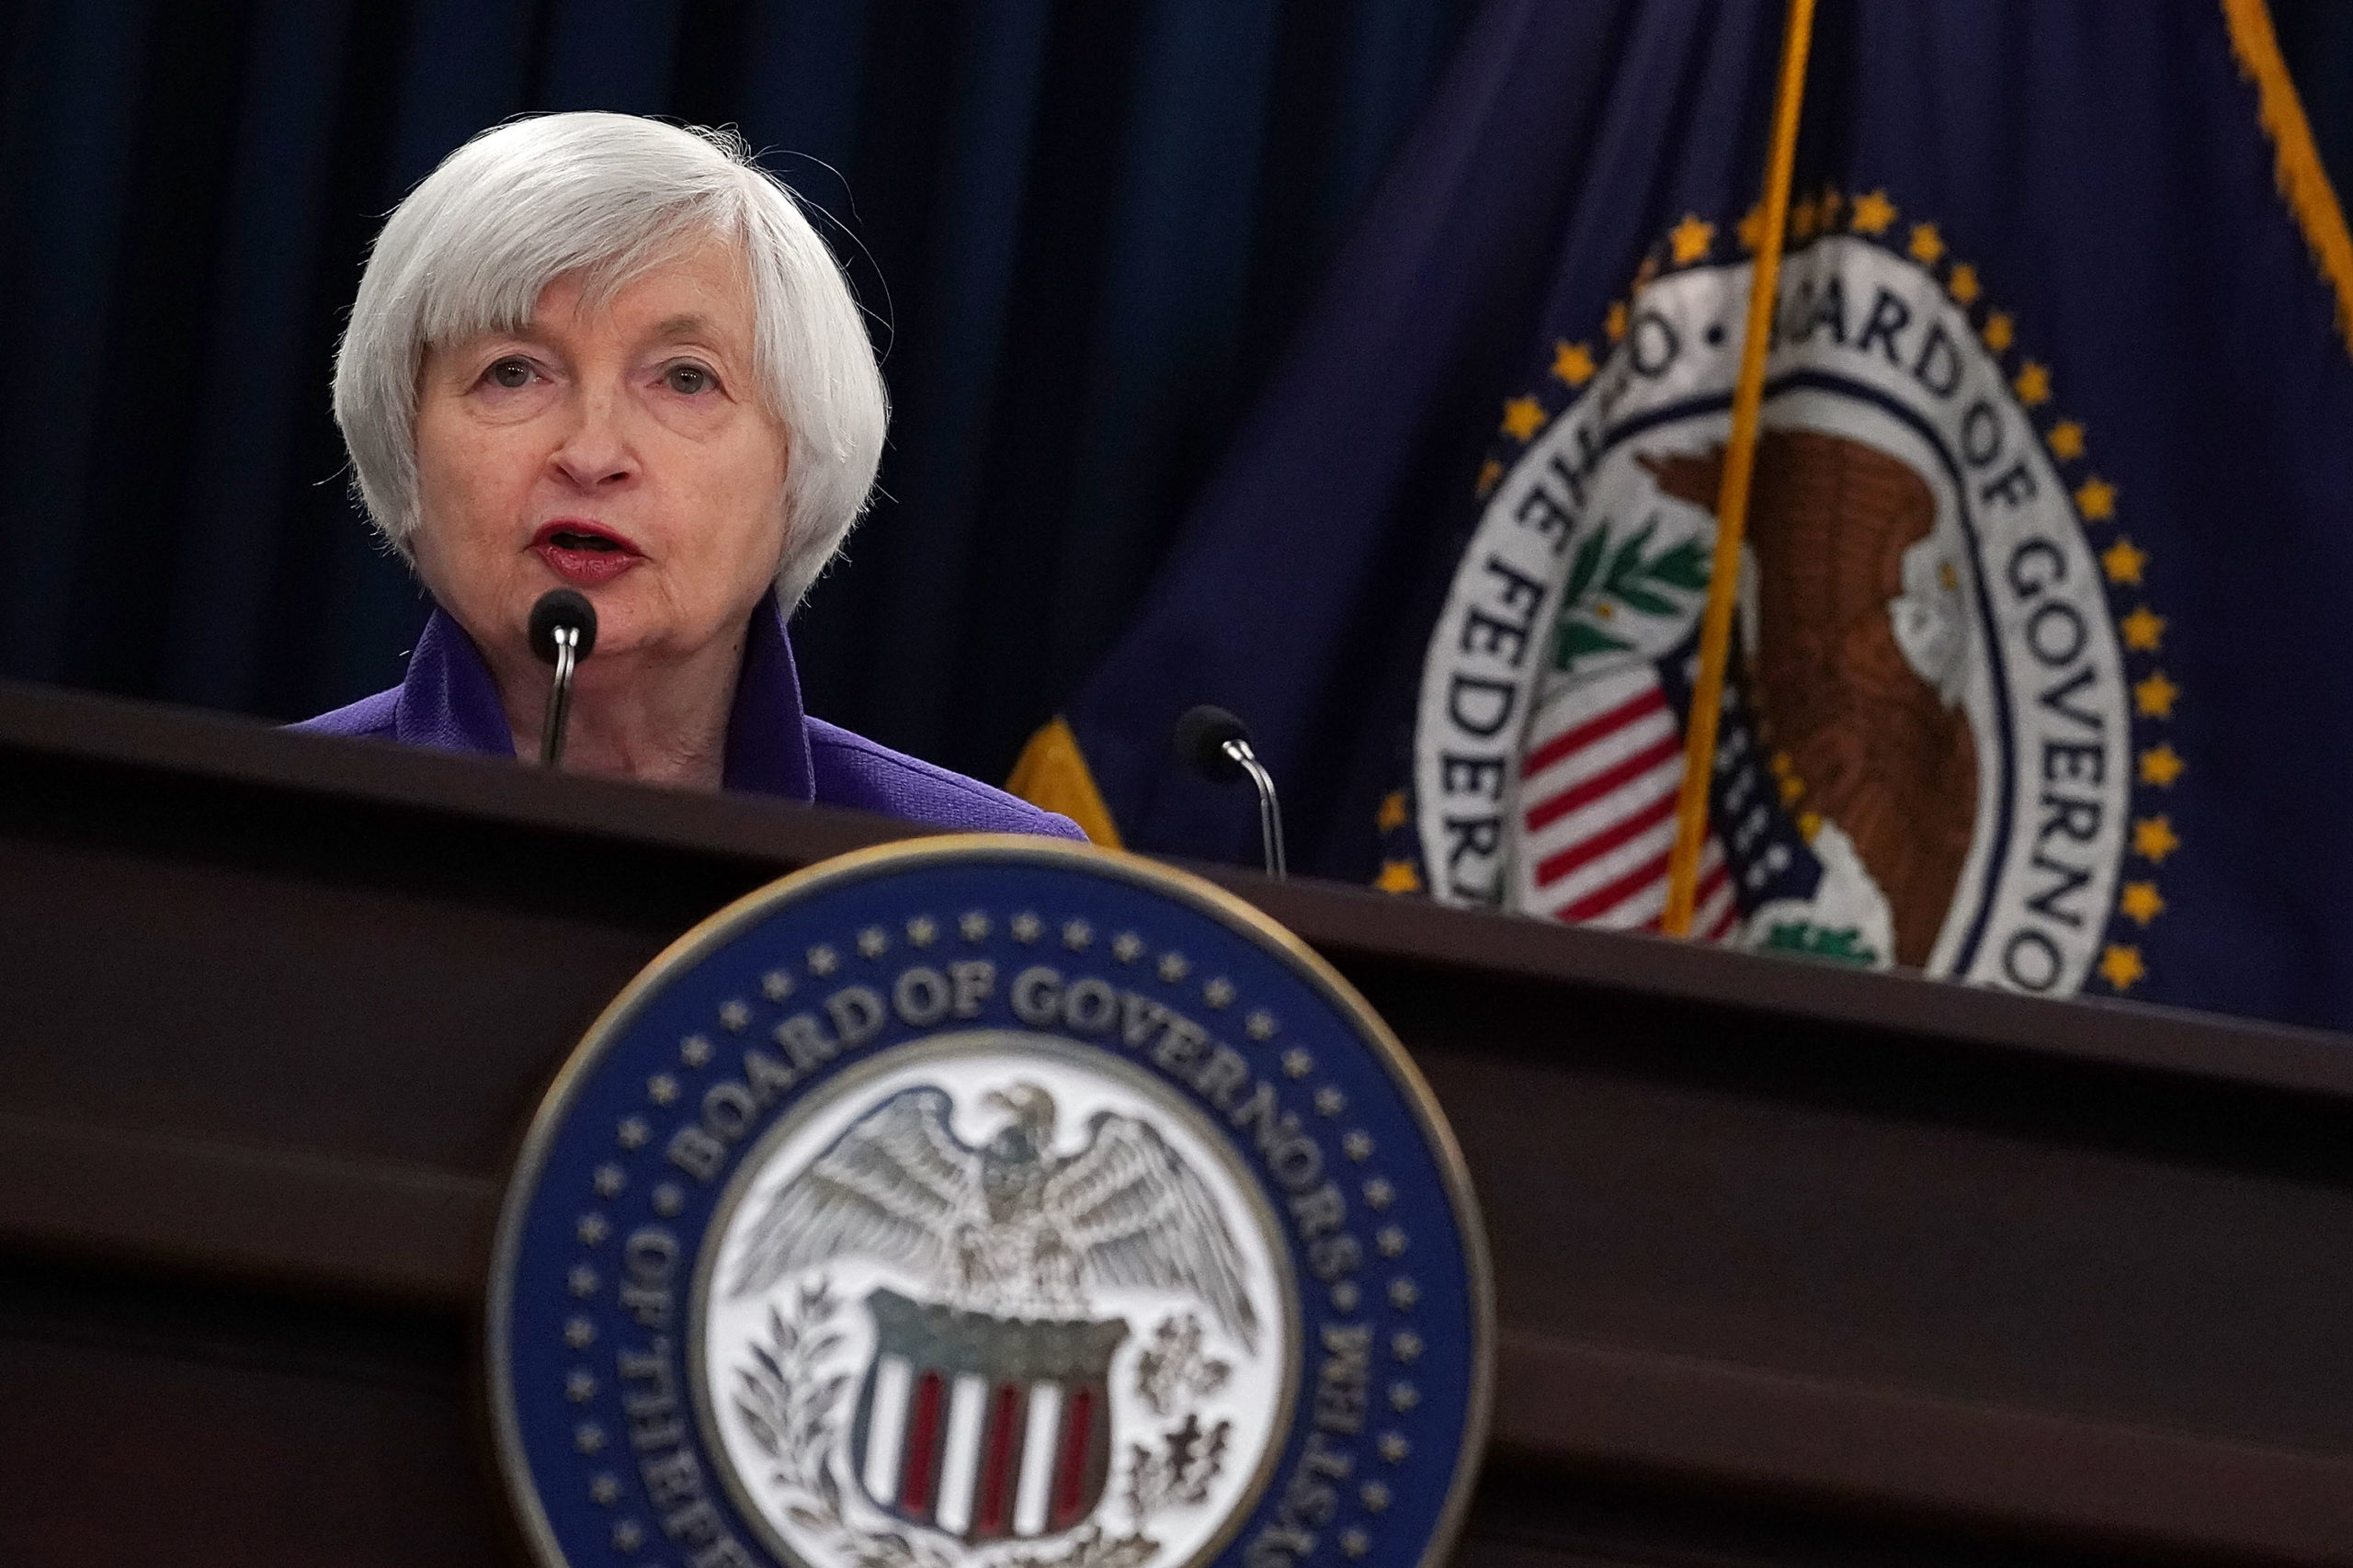 Former Federal Reserve Chair Janet Yellen speaks during a news conference on Dec. 13, 2017 in Washington, D.C. (Alex Wong/Getty Images)